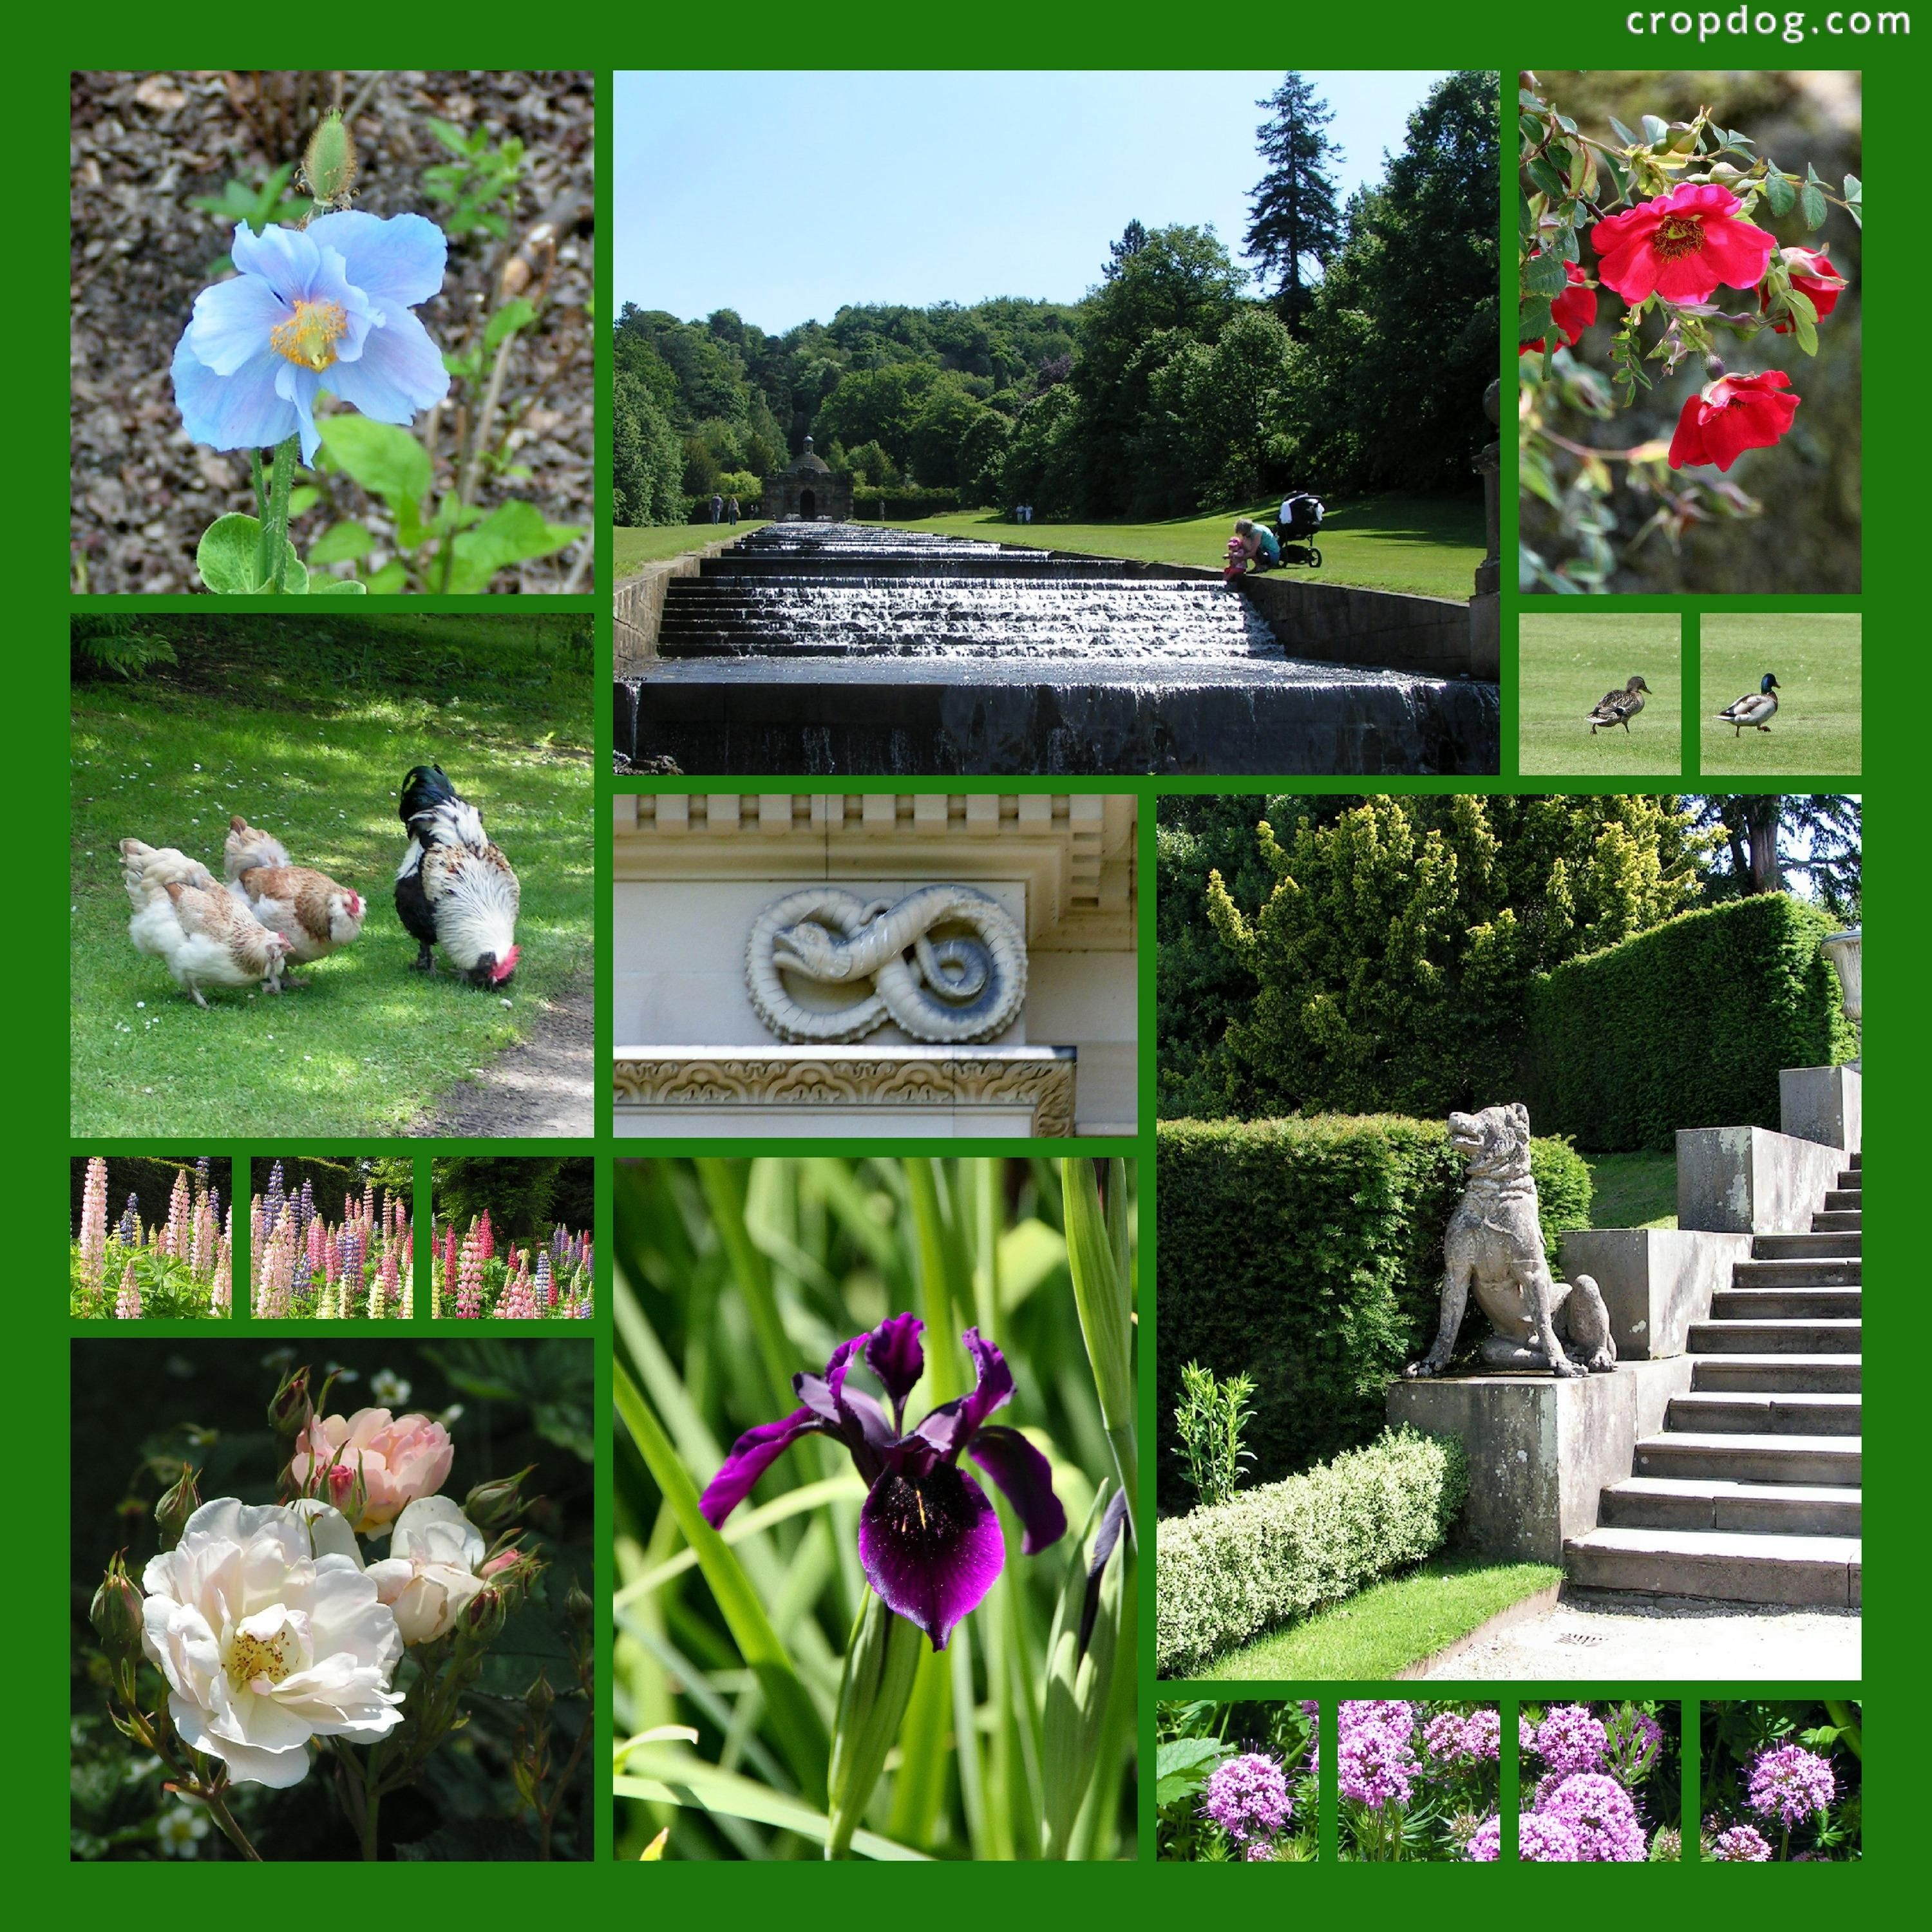 Scrapbook ideas england - Gardens At Chatsworth Magnificent Property And Lovely Gardens Peak District Derbyshire England Peak Districtcollage Ideasscrapbooking